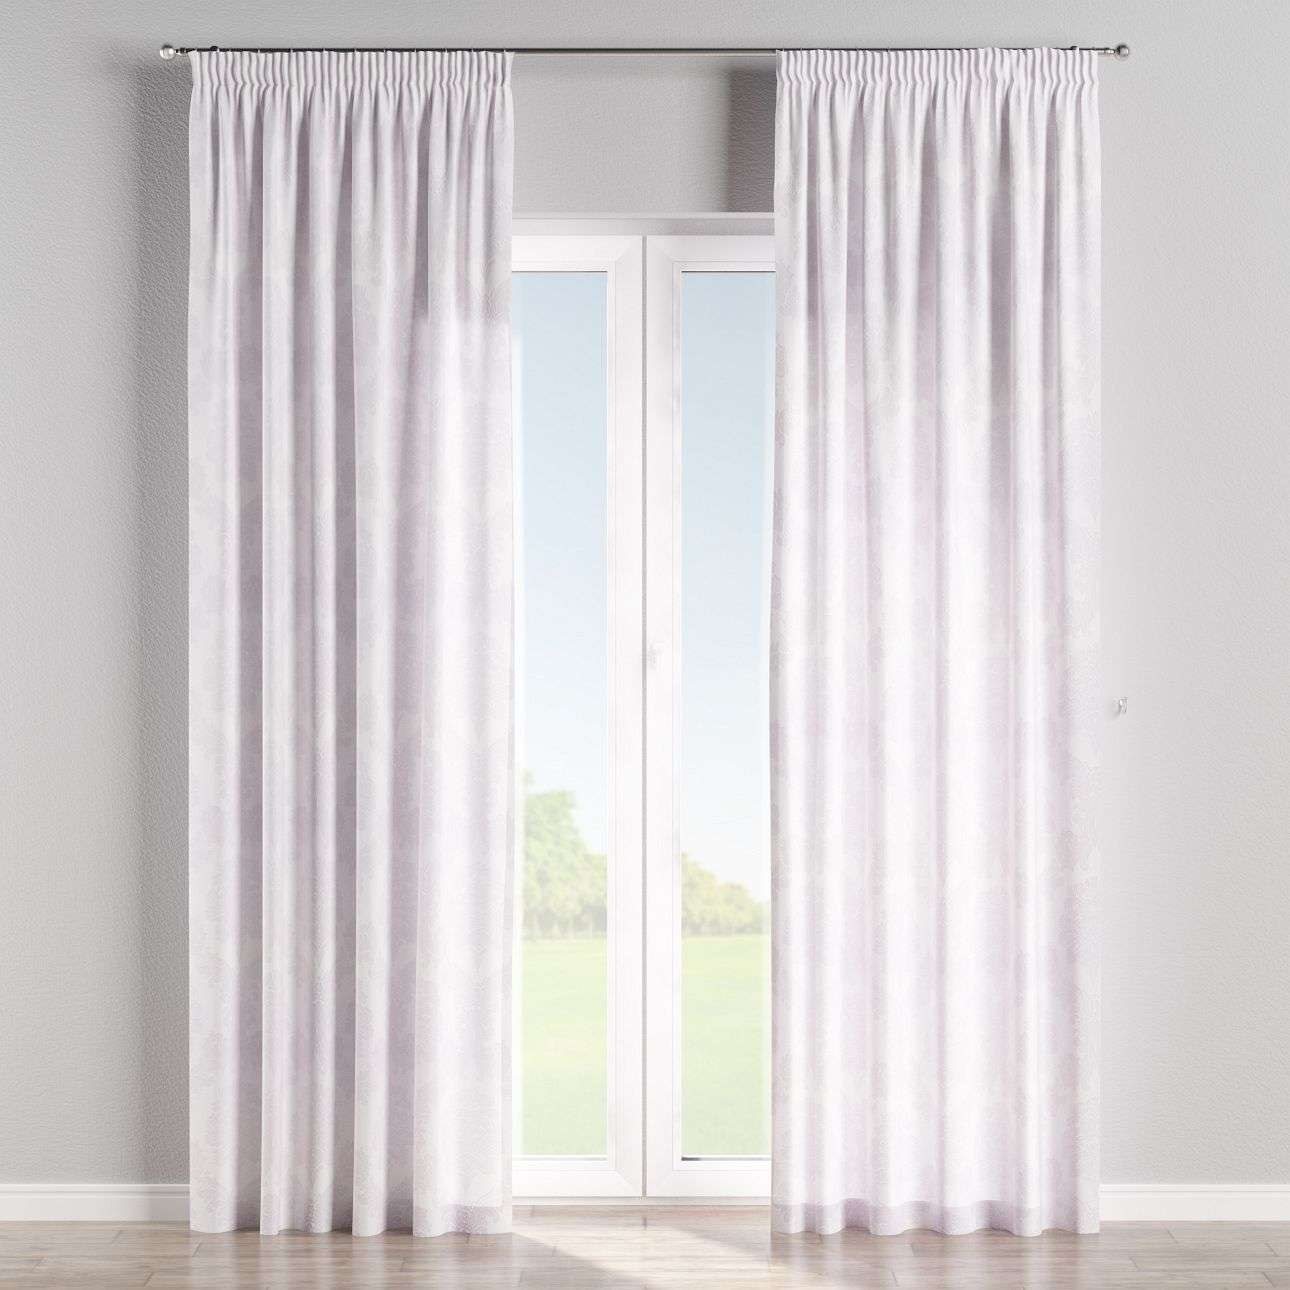 Pencil pleat curtains 130 x 260 cm (51 x 102 inch) in collection Damasco, fabric: 613-00